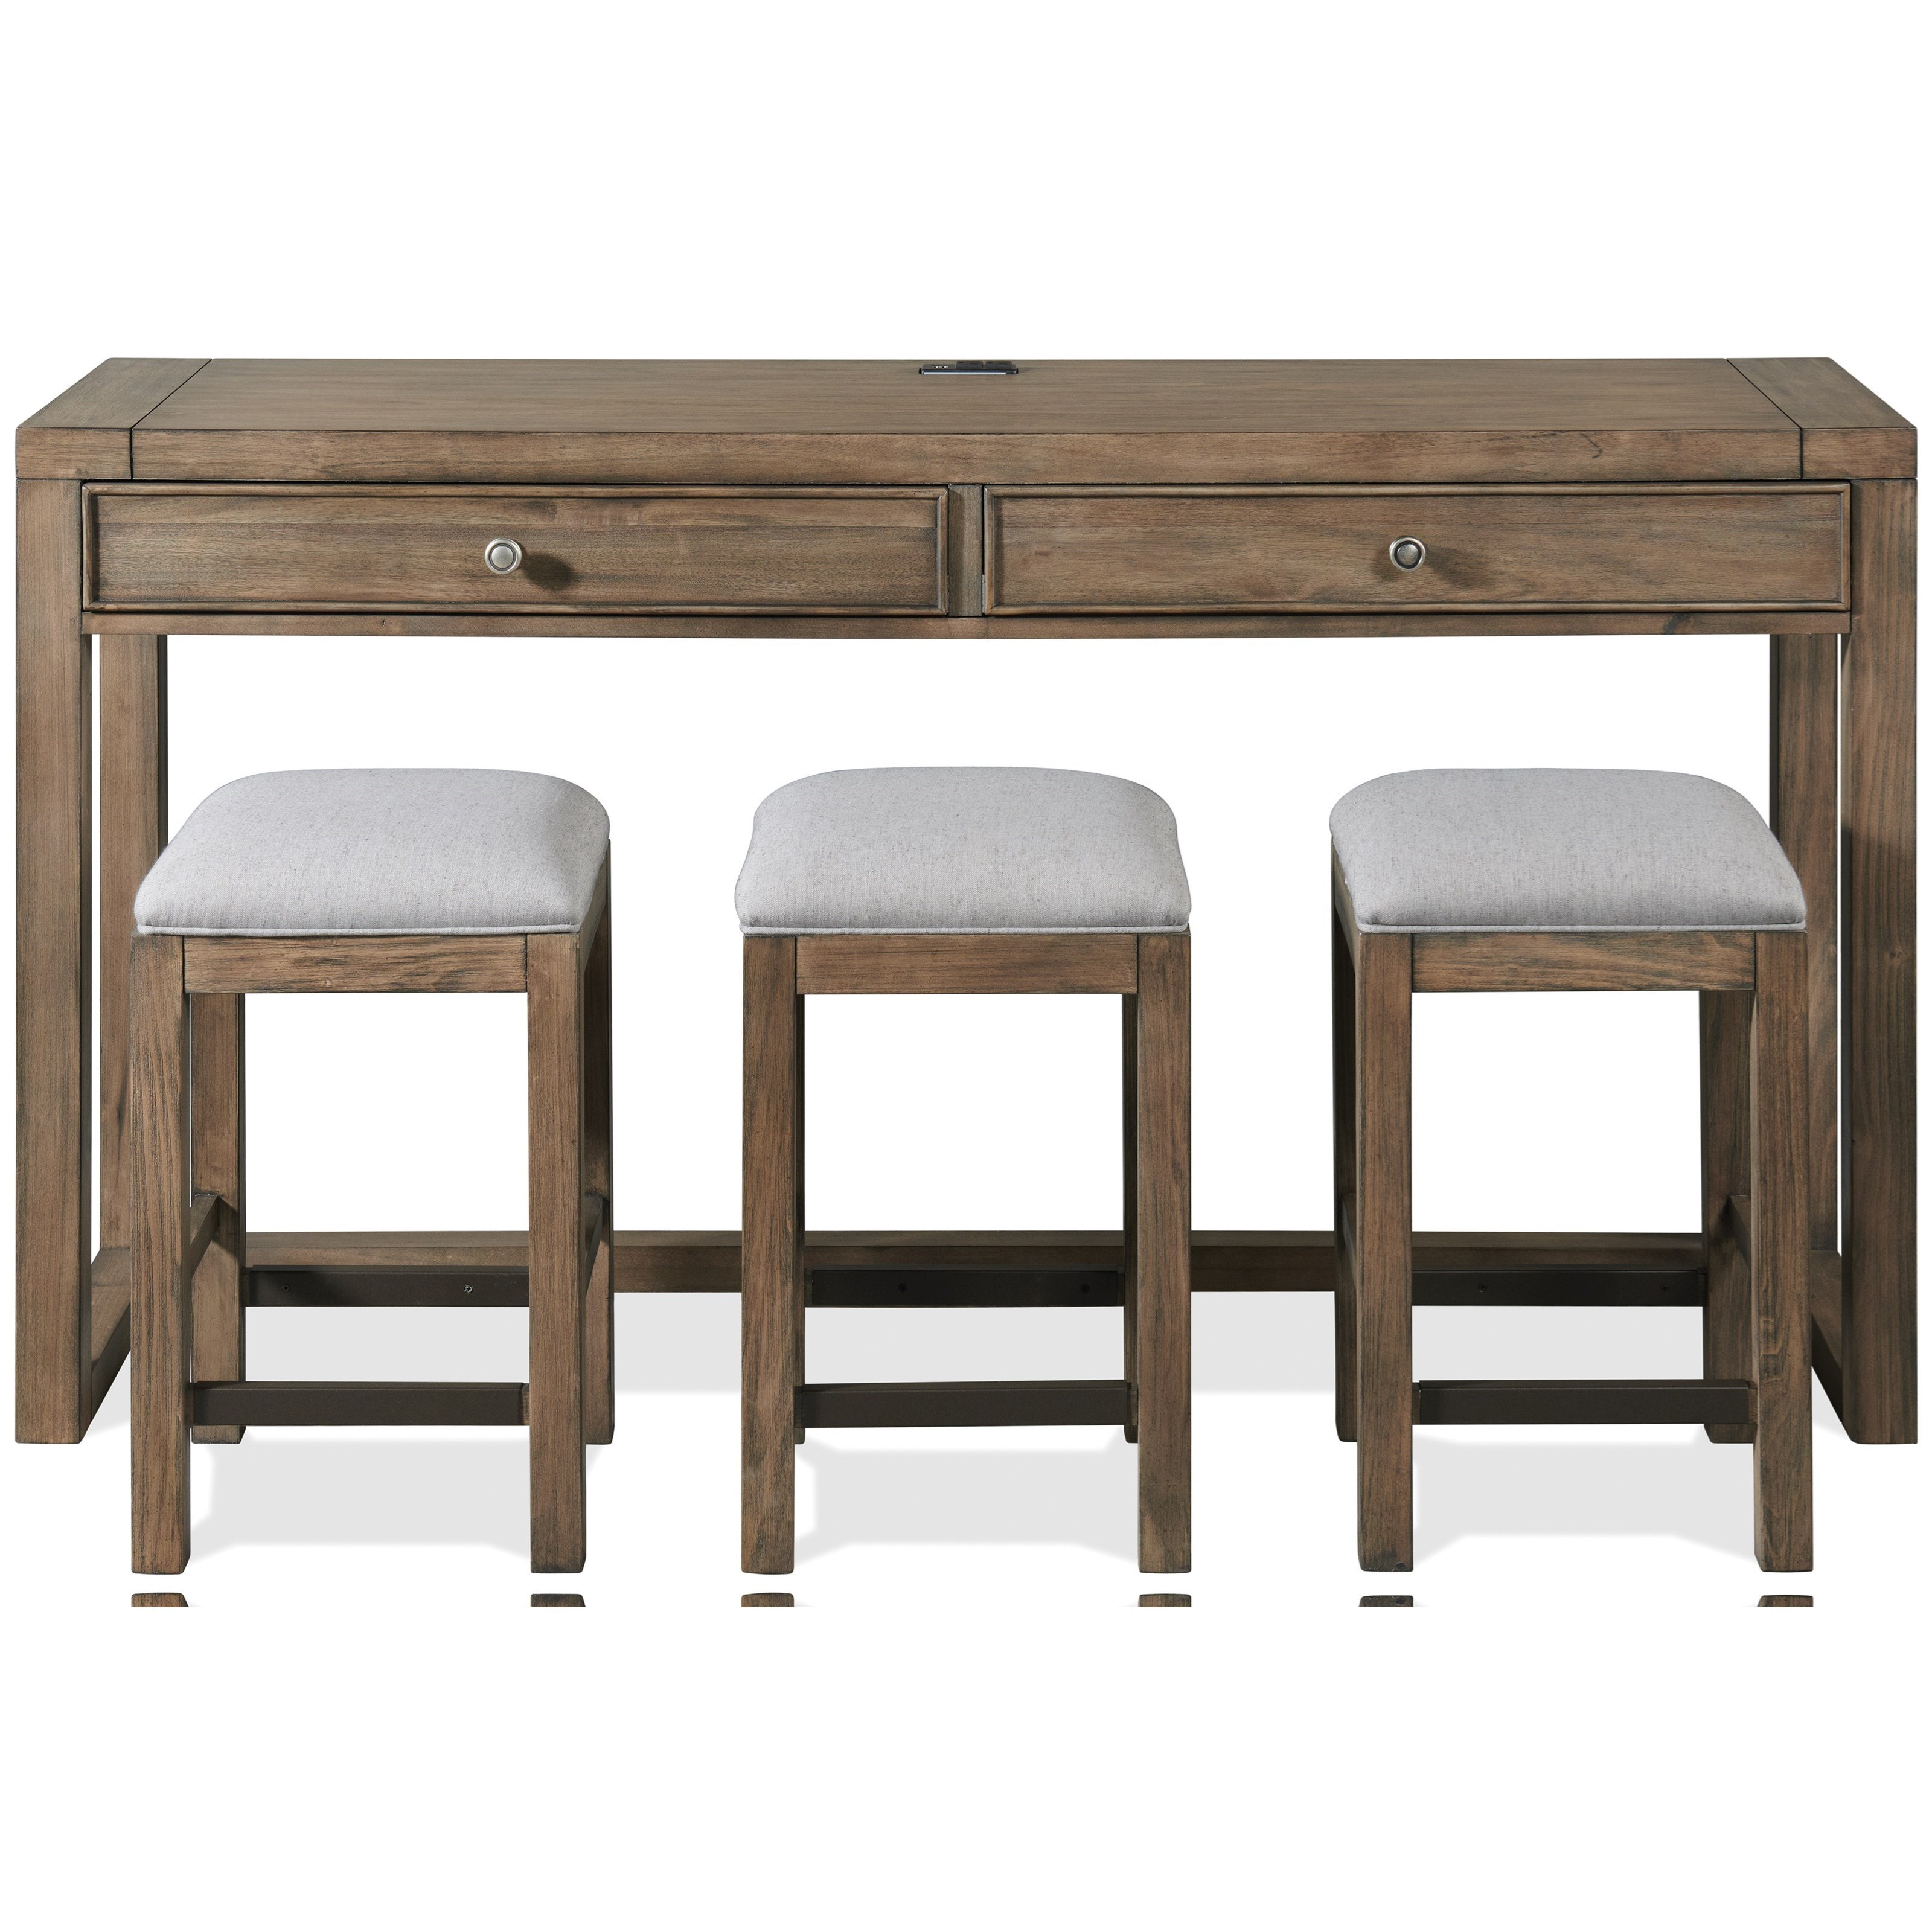 Contemporary Rustic Console Table with Stools, Outlets and USB Chargers